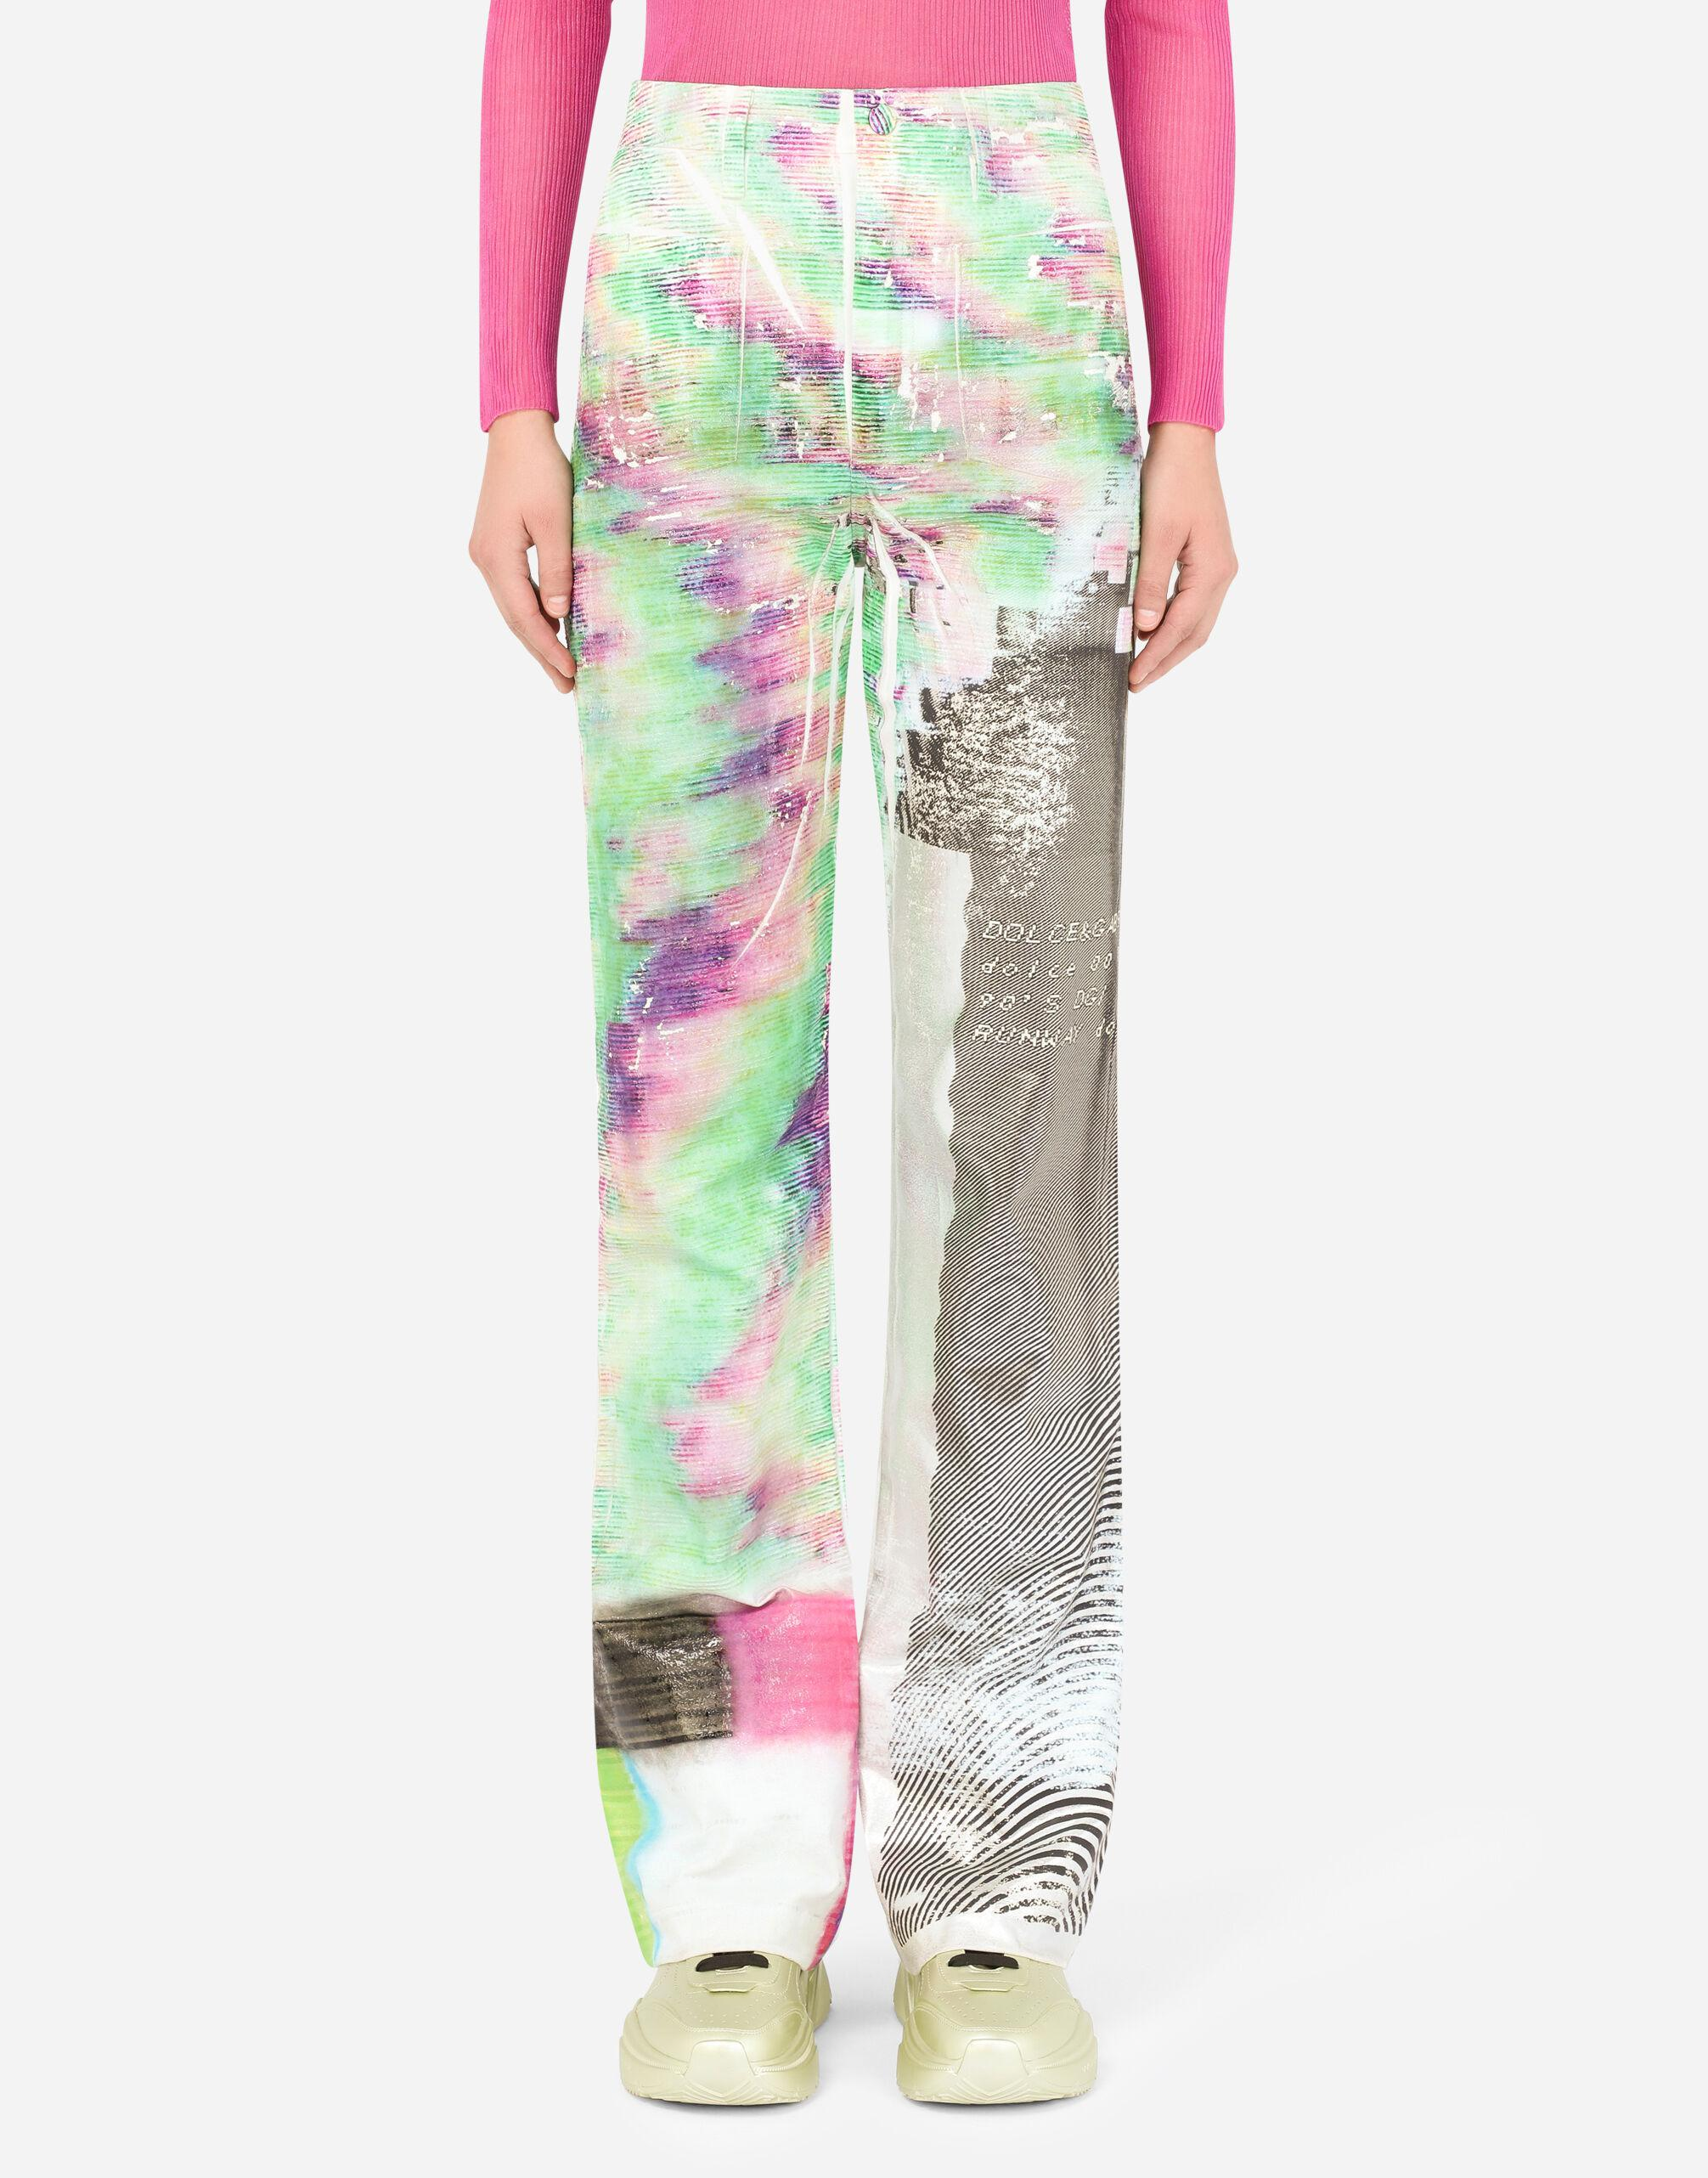 Flared jeans with foiled multi-colored glitch print